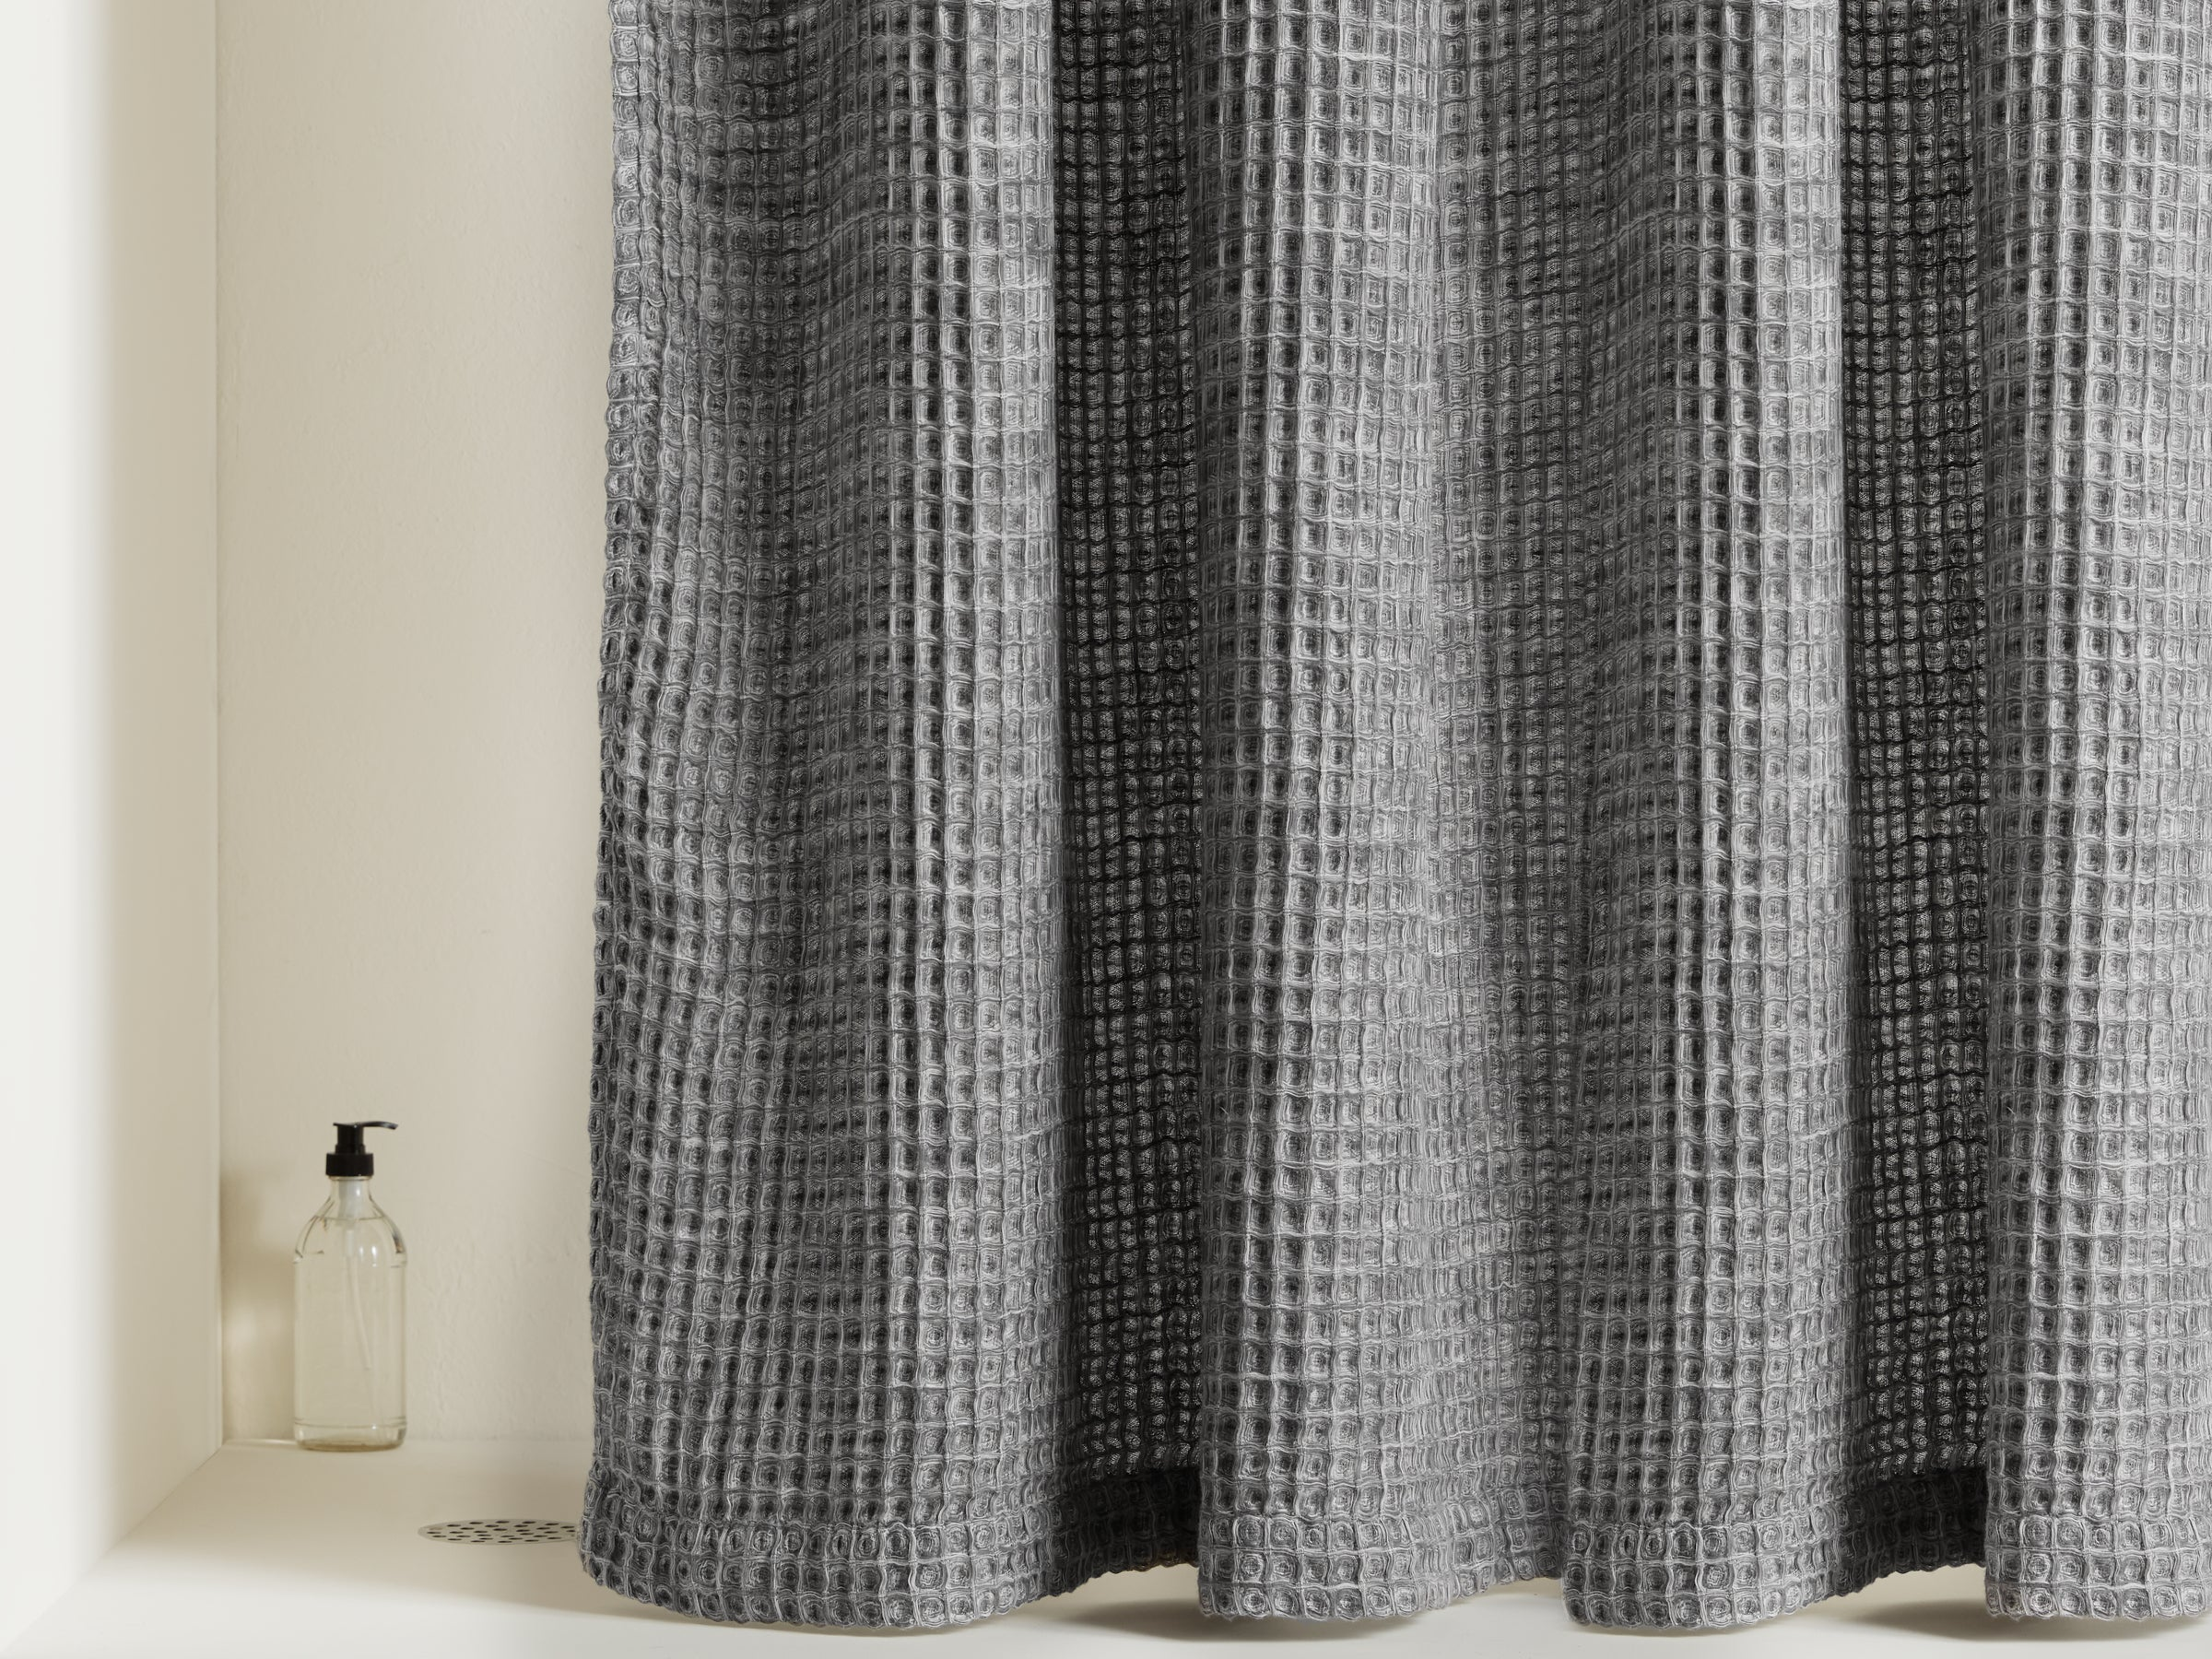 Waffle Shower Curtain Shown In A Room